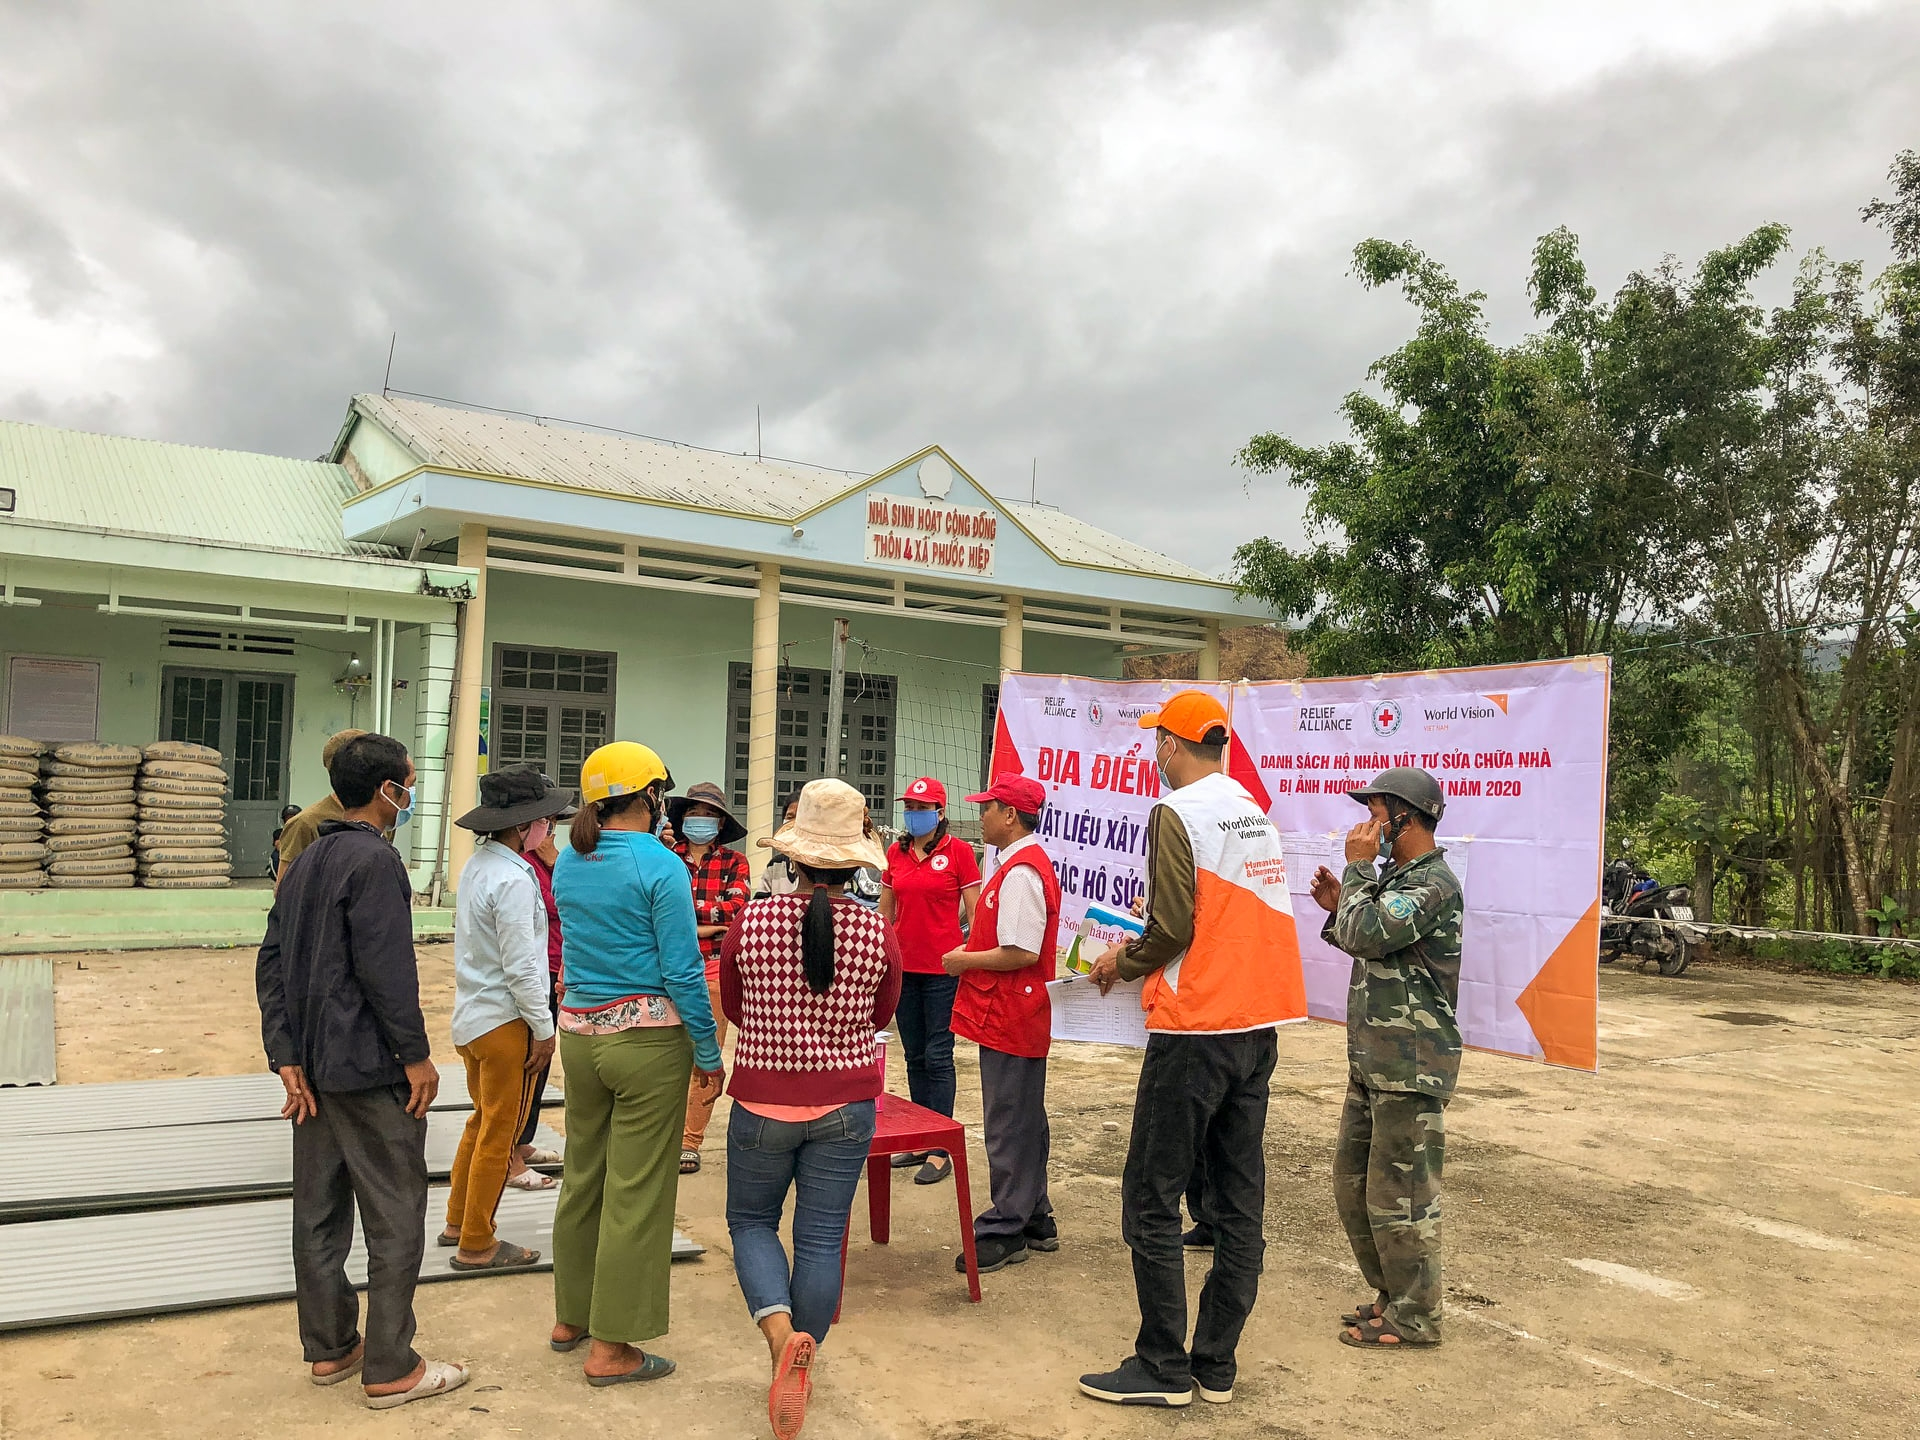 US$ 15,898 worth Covid-19 emergency aid package handed over to Ho Chi Minh City